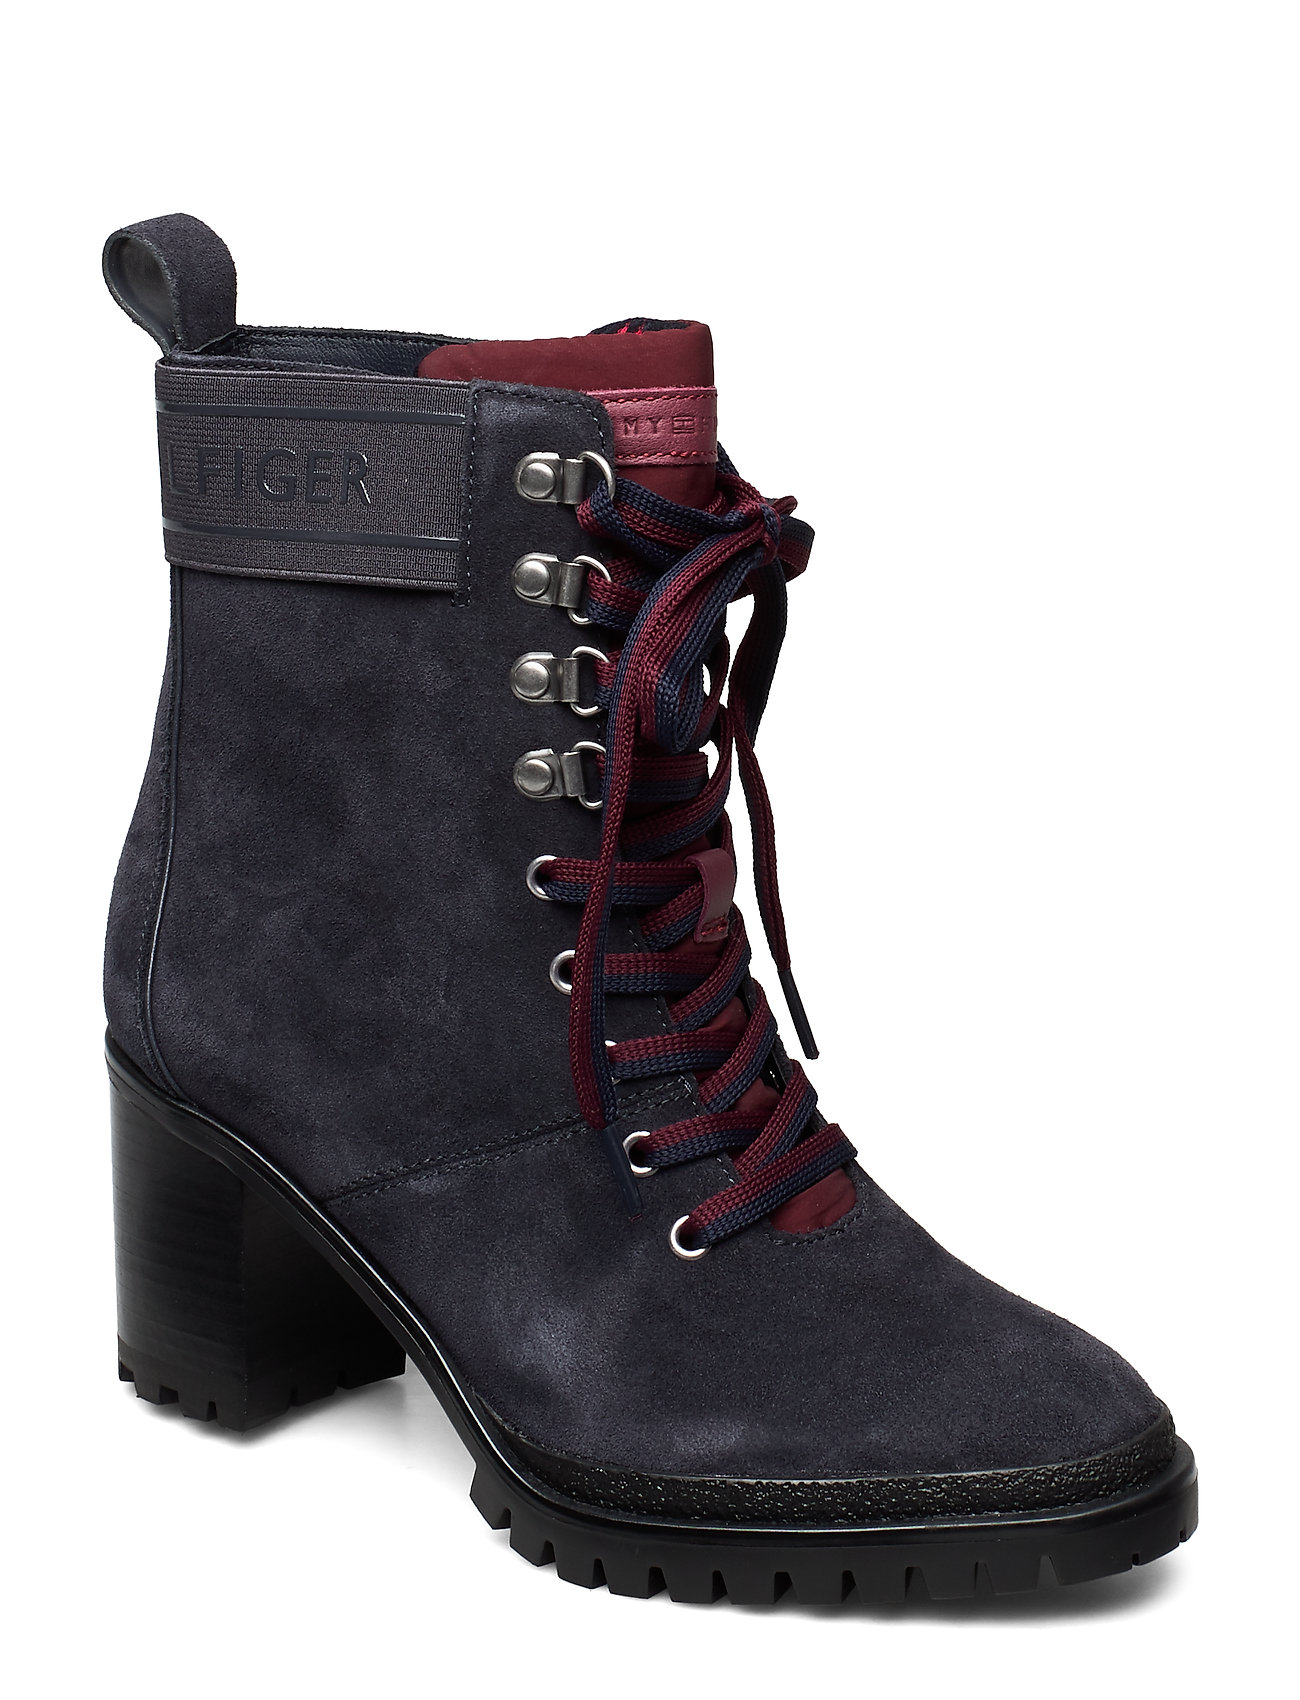 Image of Sporty Outdoor Mid Heel Lace Up Shoes Boots Ankle Boots Ankle Boots With Heel Blå Tommy Hilfiger (3247206469)